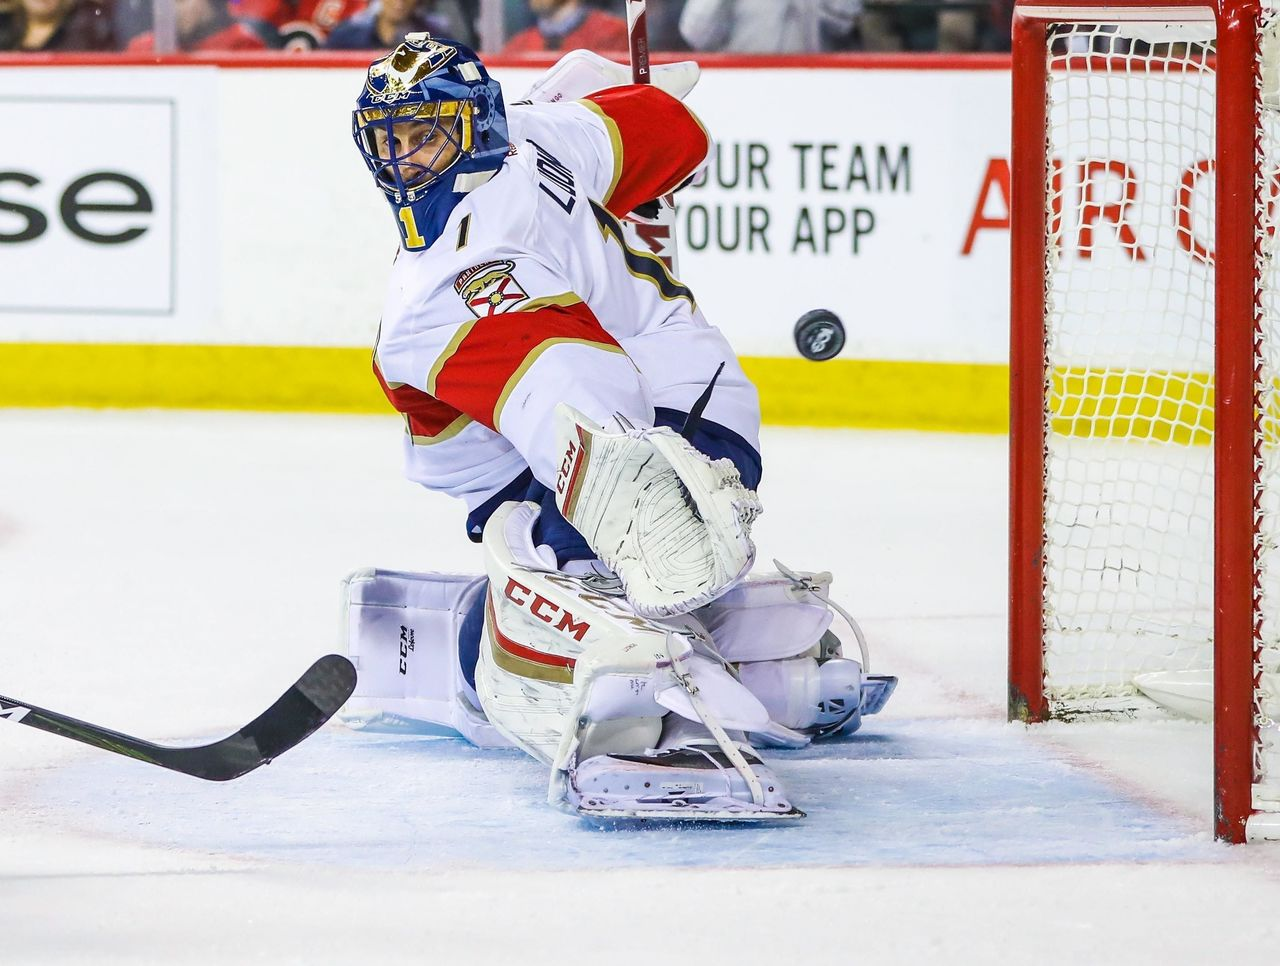 Cropped 2017 01 18t031053z 1215349642 nocid rtrmadp 3 nhl florida panthers at calgary flames